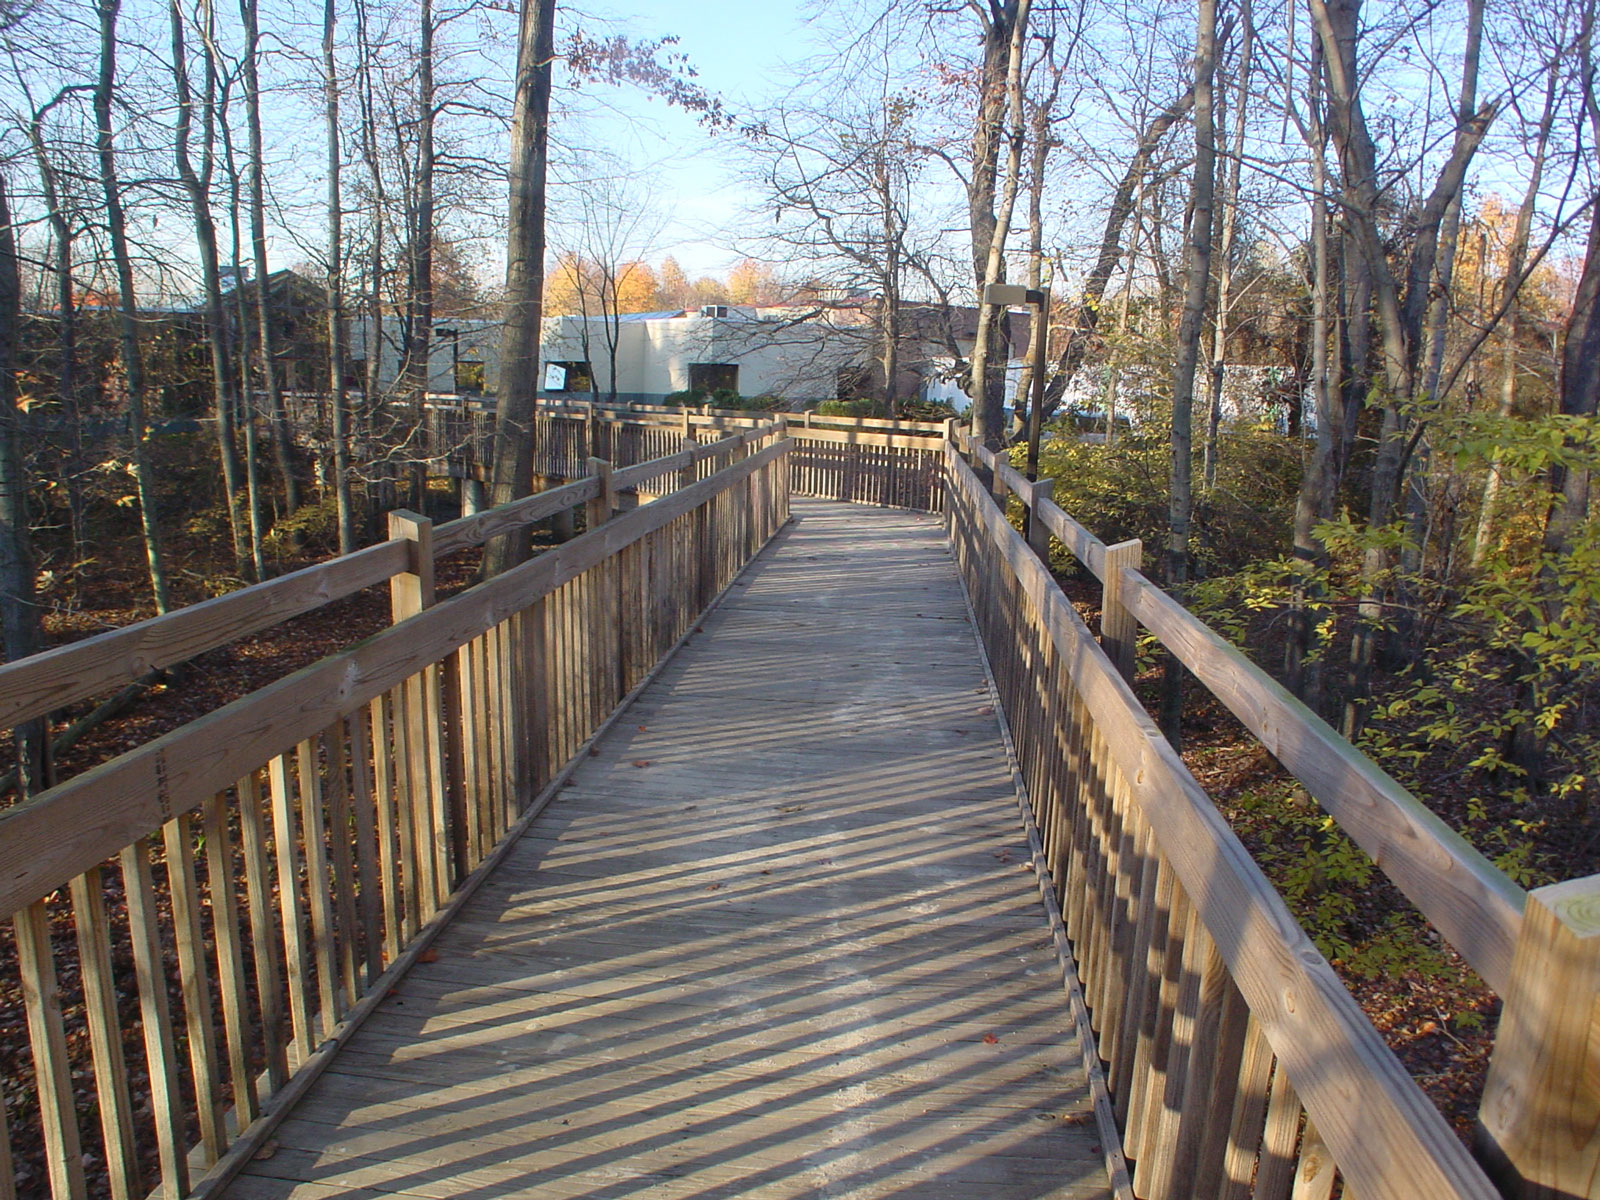 The wetlands were protected by separating the building from the parking lot with this boardwalk through the woods. Both the sighted and unsighted enjoy a walk in the woods and the wide berth allows guide dogs to pass.